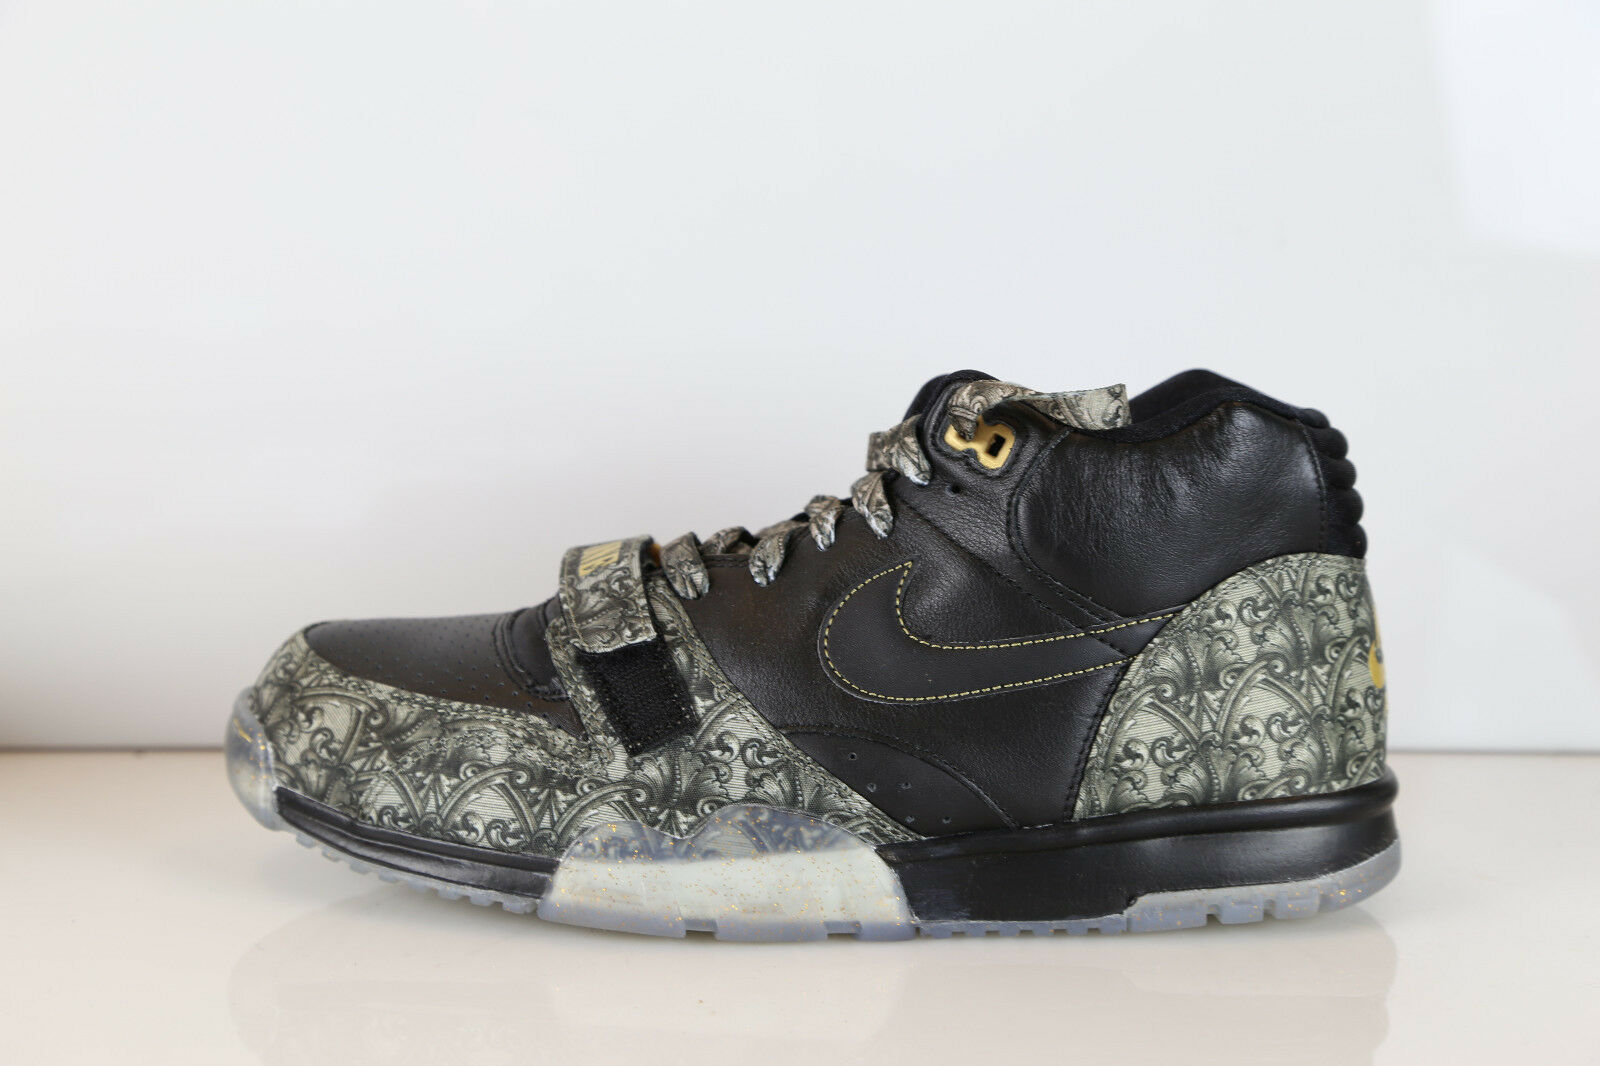 Nike Air Trainer 1 Mid Premium QS Paid in Full 607081-002 10.5